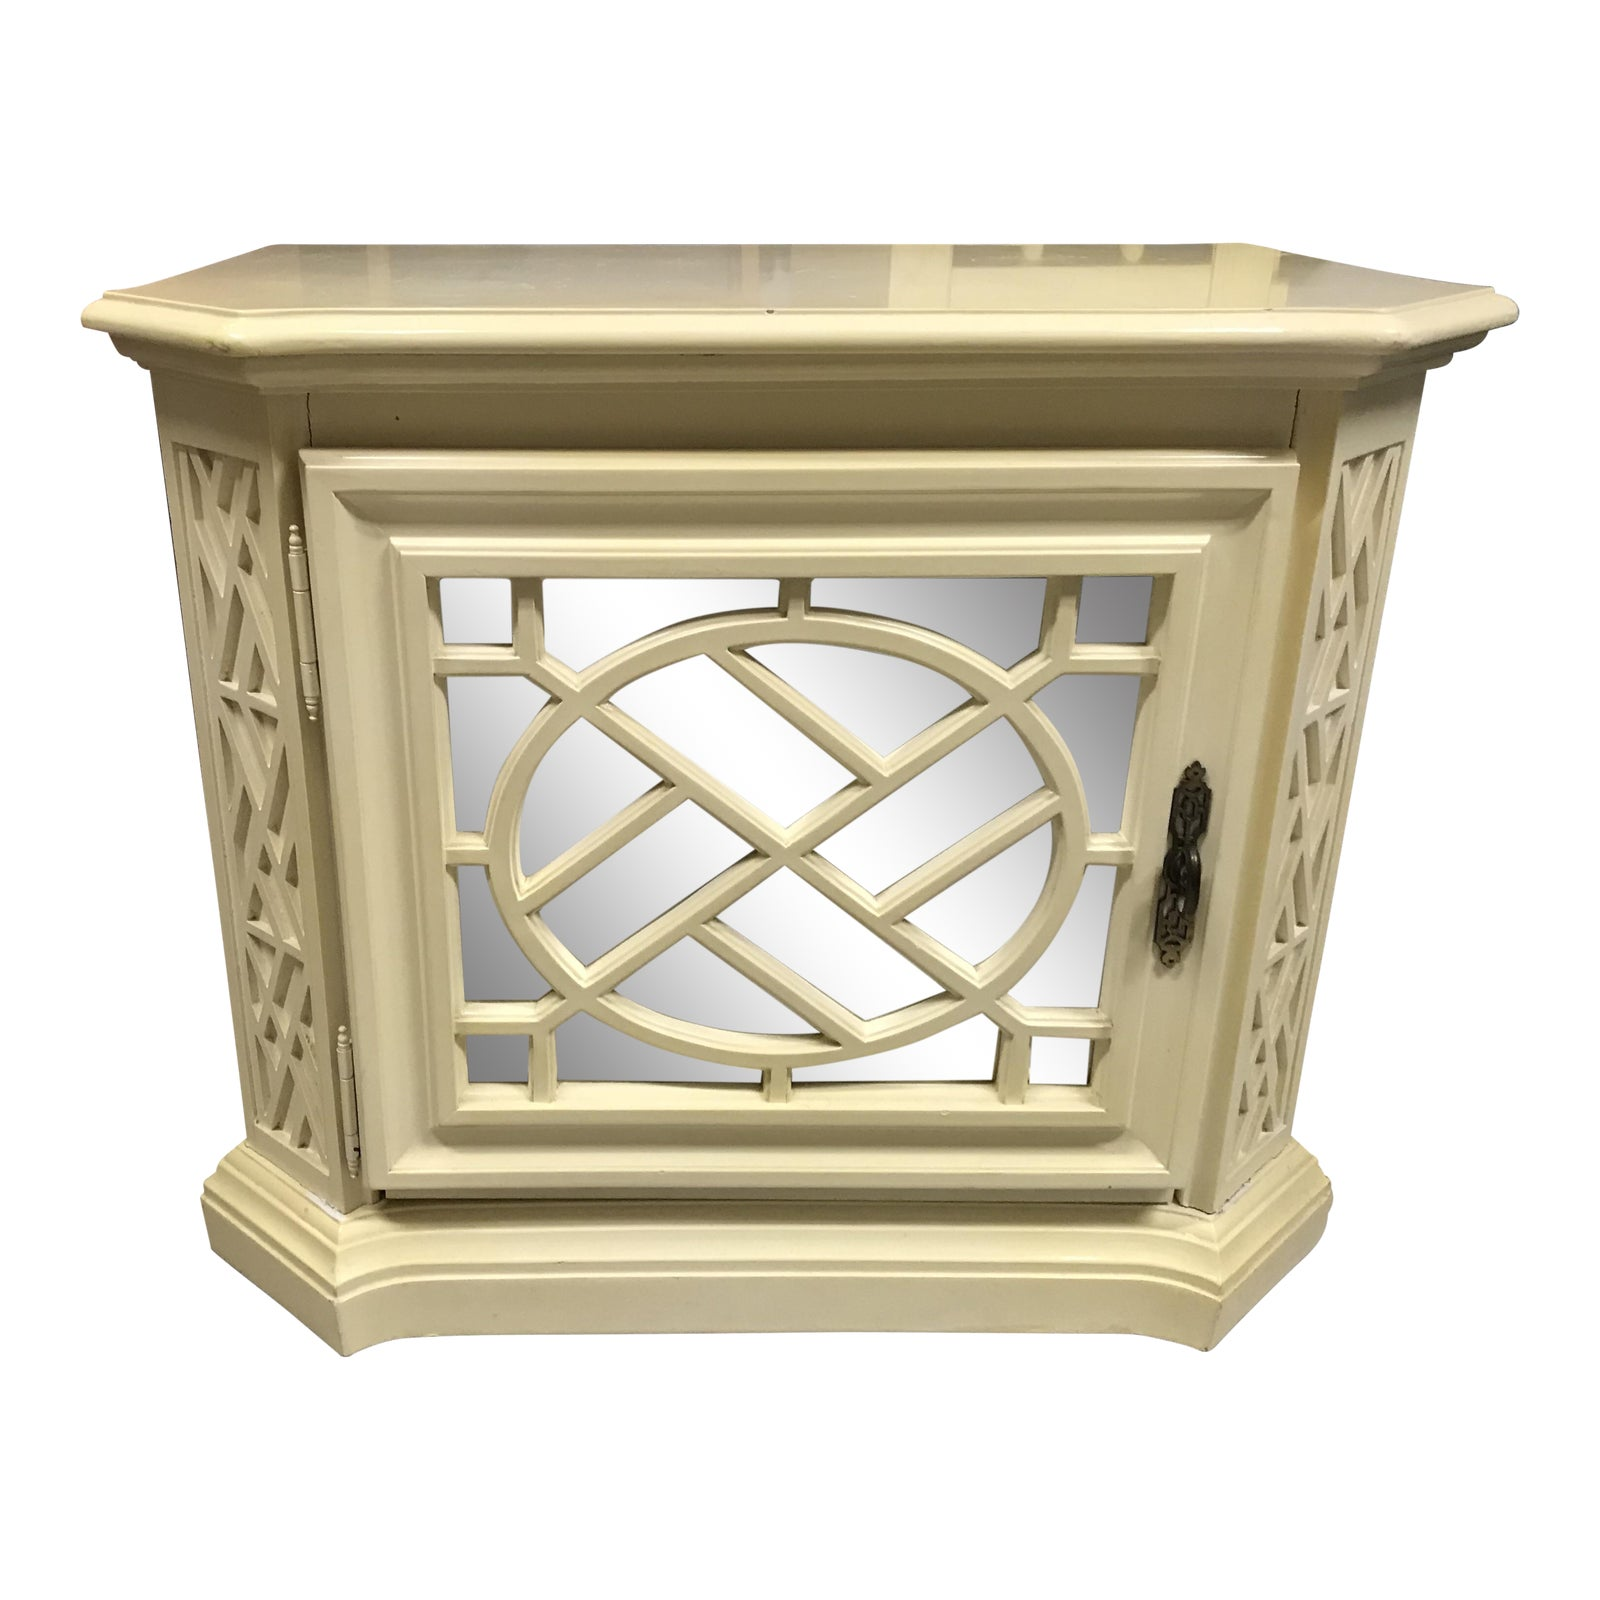 Vintage Fretwork Mirrored Chinese Chippendale Small Cabinet Nightstand - Chairish